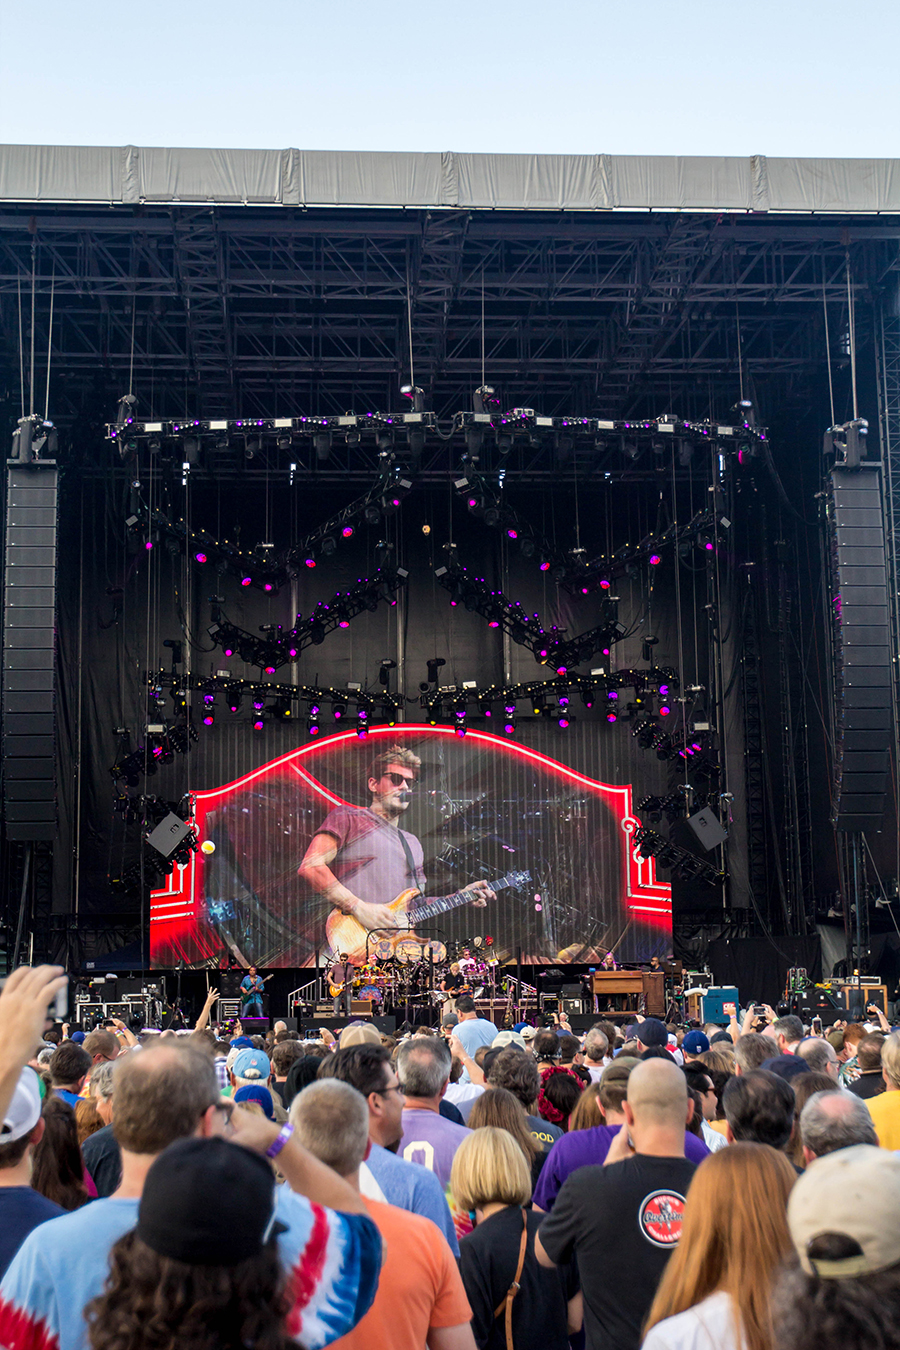 IMG 4729 Dead and Company close out their Summer tour at Wrigley Field